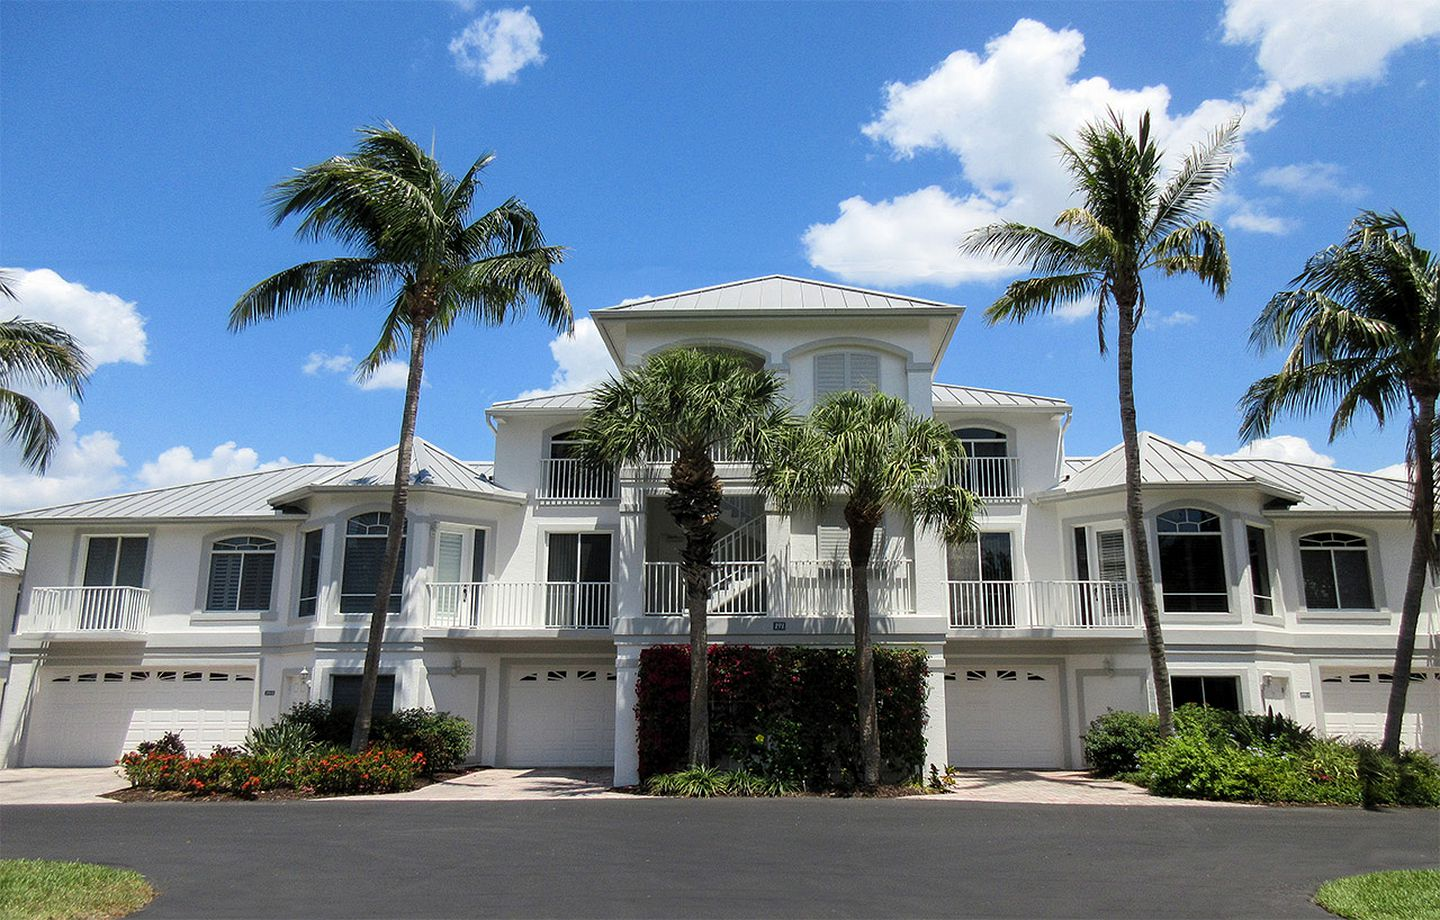 Villas (Fort Myers Beach, Florida, United States)